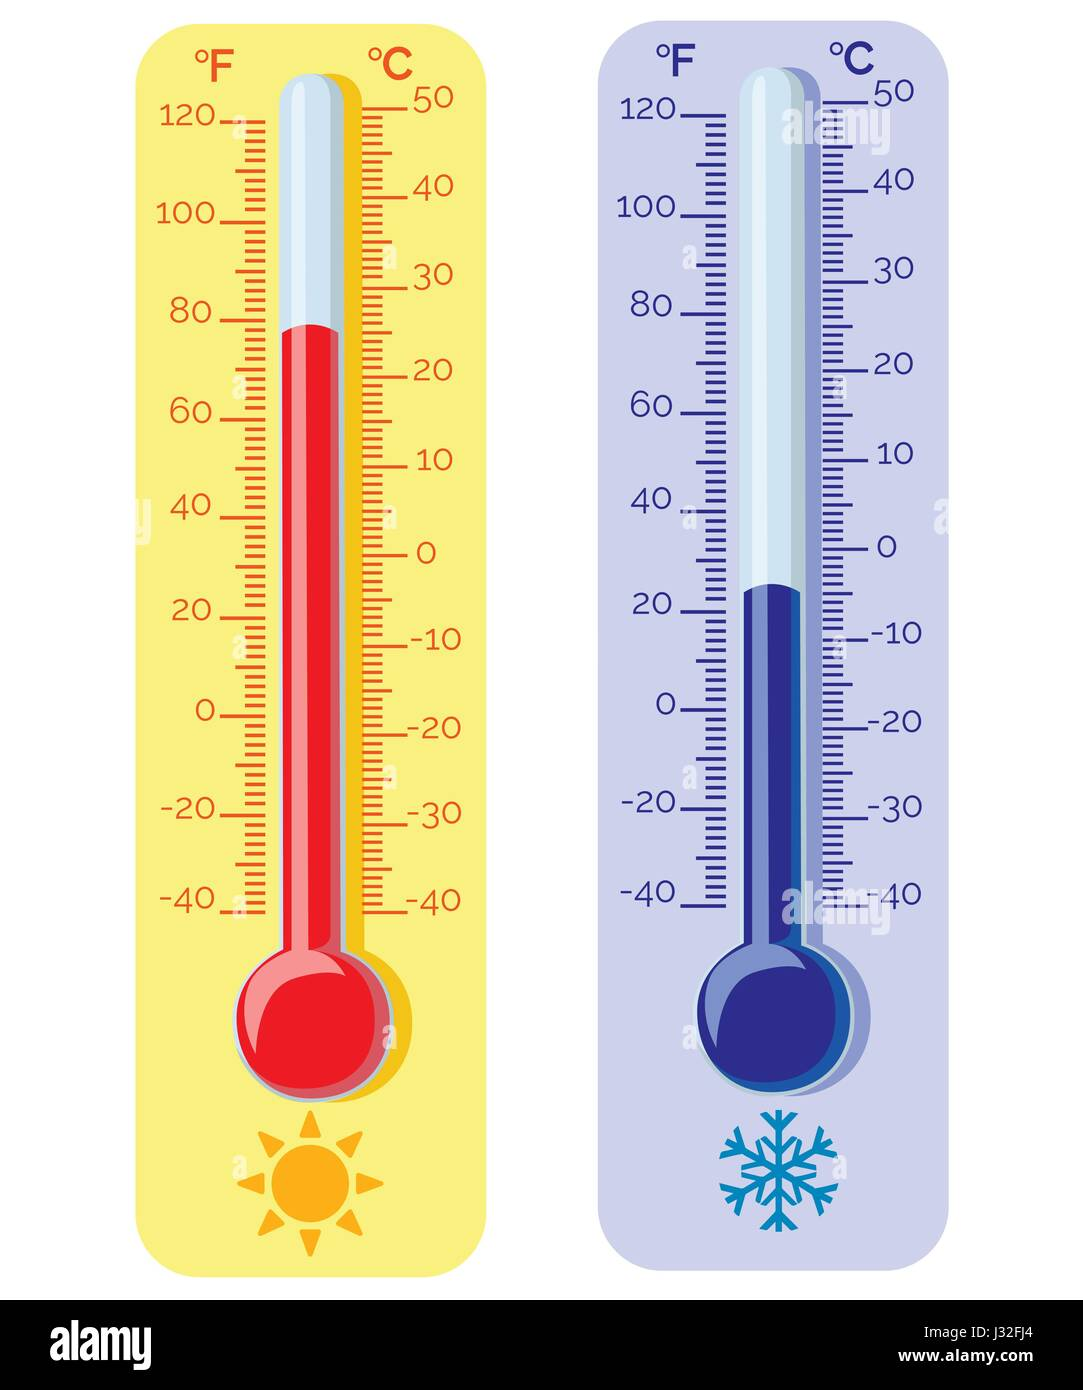 Thermometer equipment showing hot or cold weather .Celsius ...